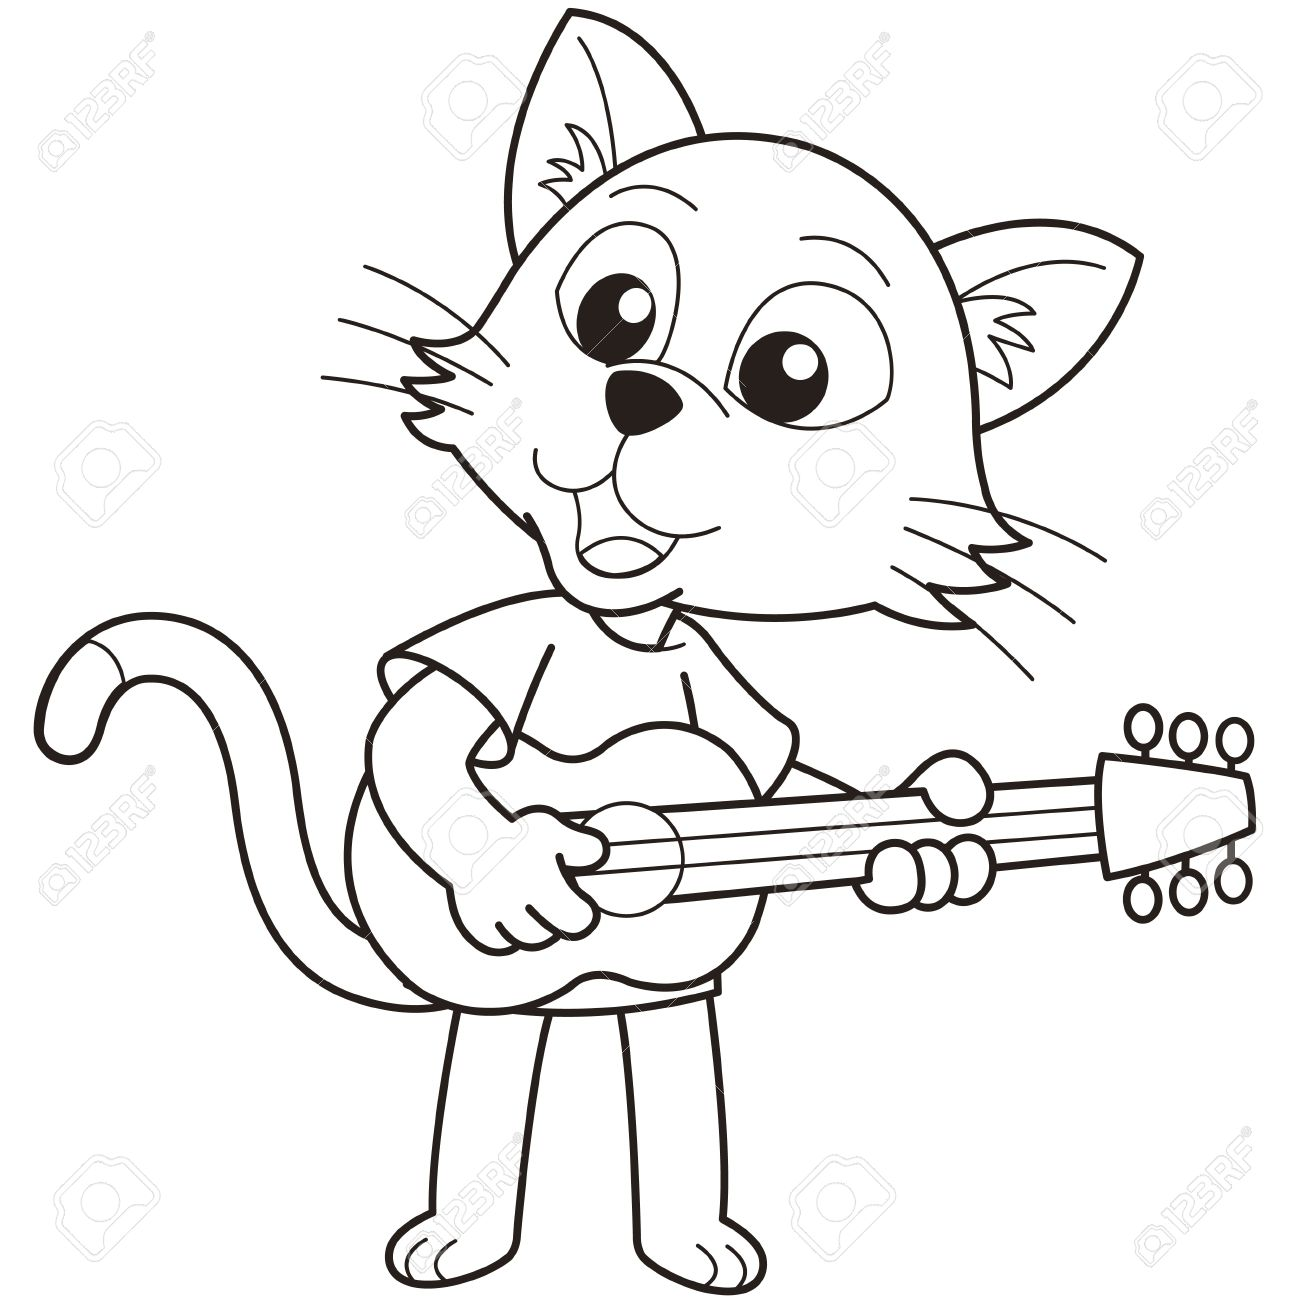 1300x1300 Cartoon Cat Playing A Guitar Black And White Royalty Free Cliparts